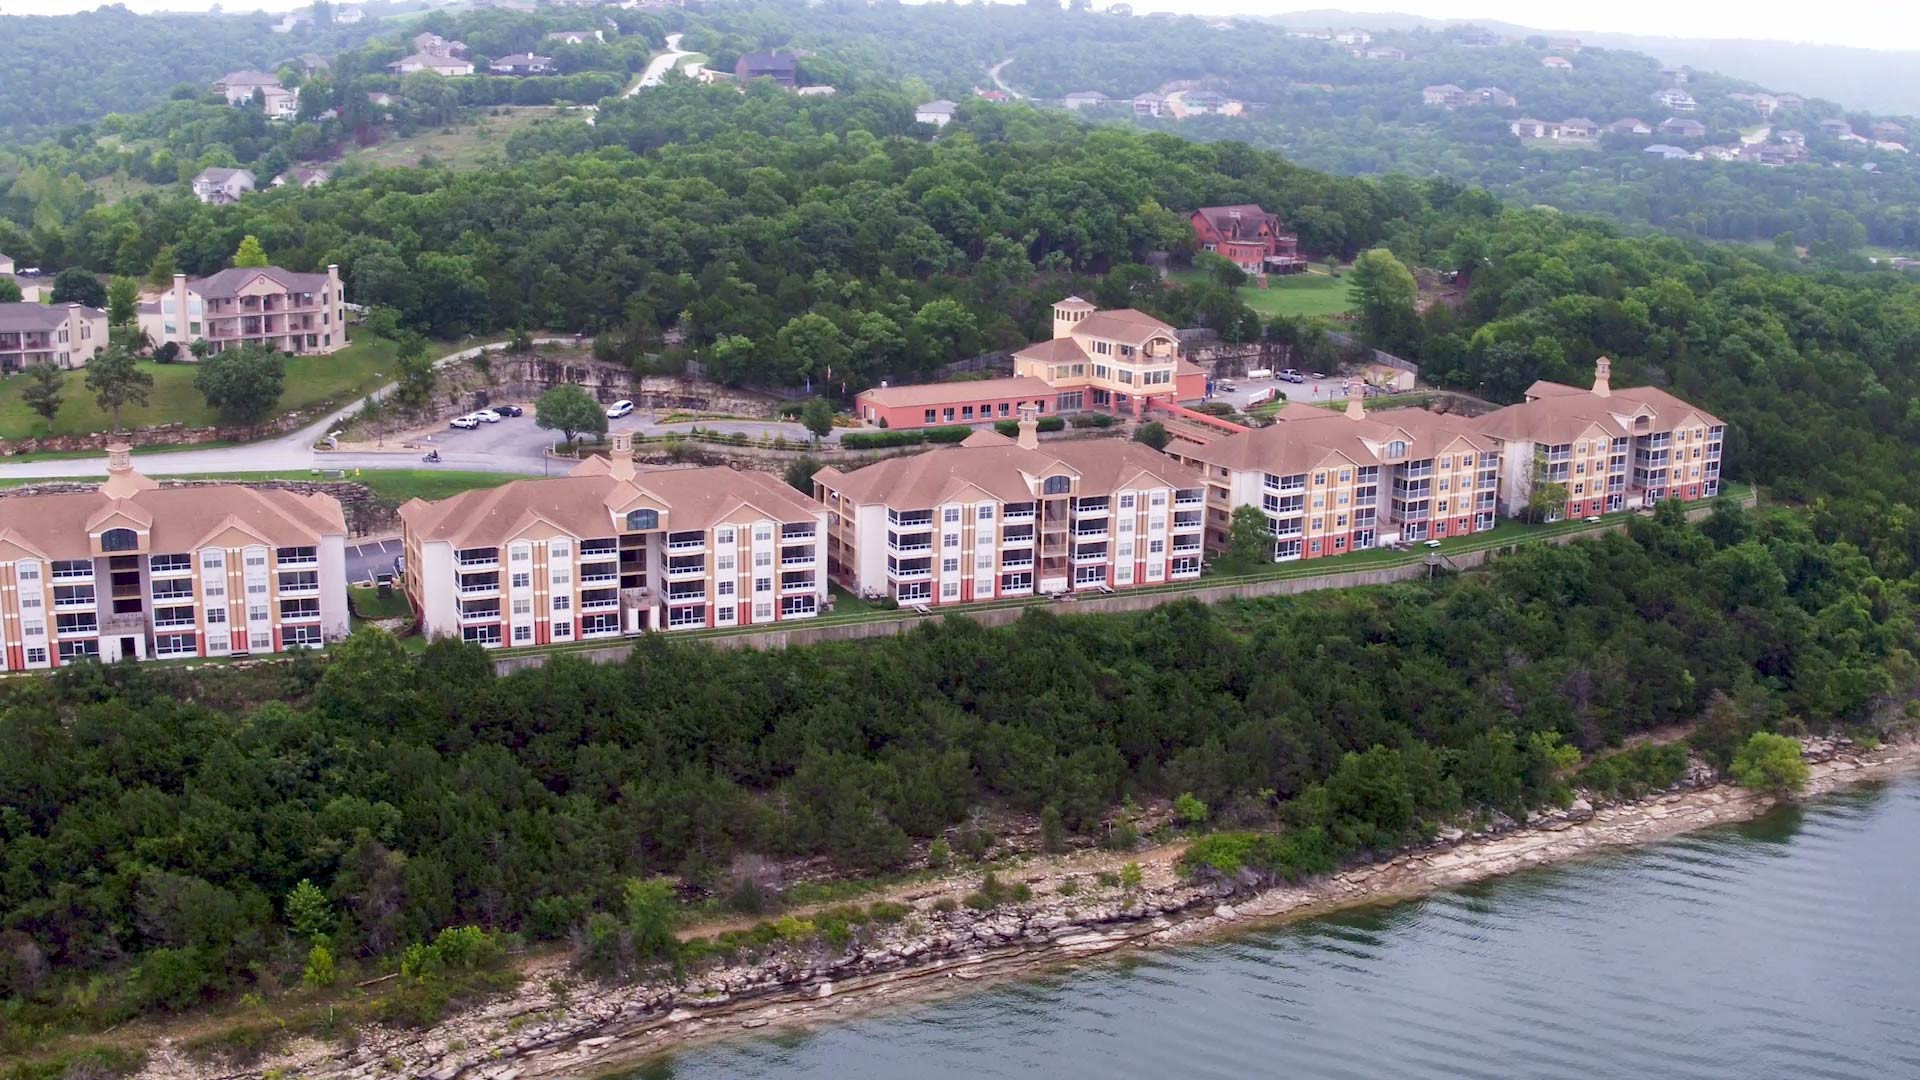 The gem of Table Rock Lake, Westgate Branson Lakes Resort features spacious accommodations and abundant onsite amenities near Branson, Missouri's best shows & attractions. Choose from spacious One or Two Bedrooms, just minutes from Branson's outdoor recreational opportunities.